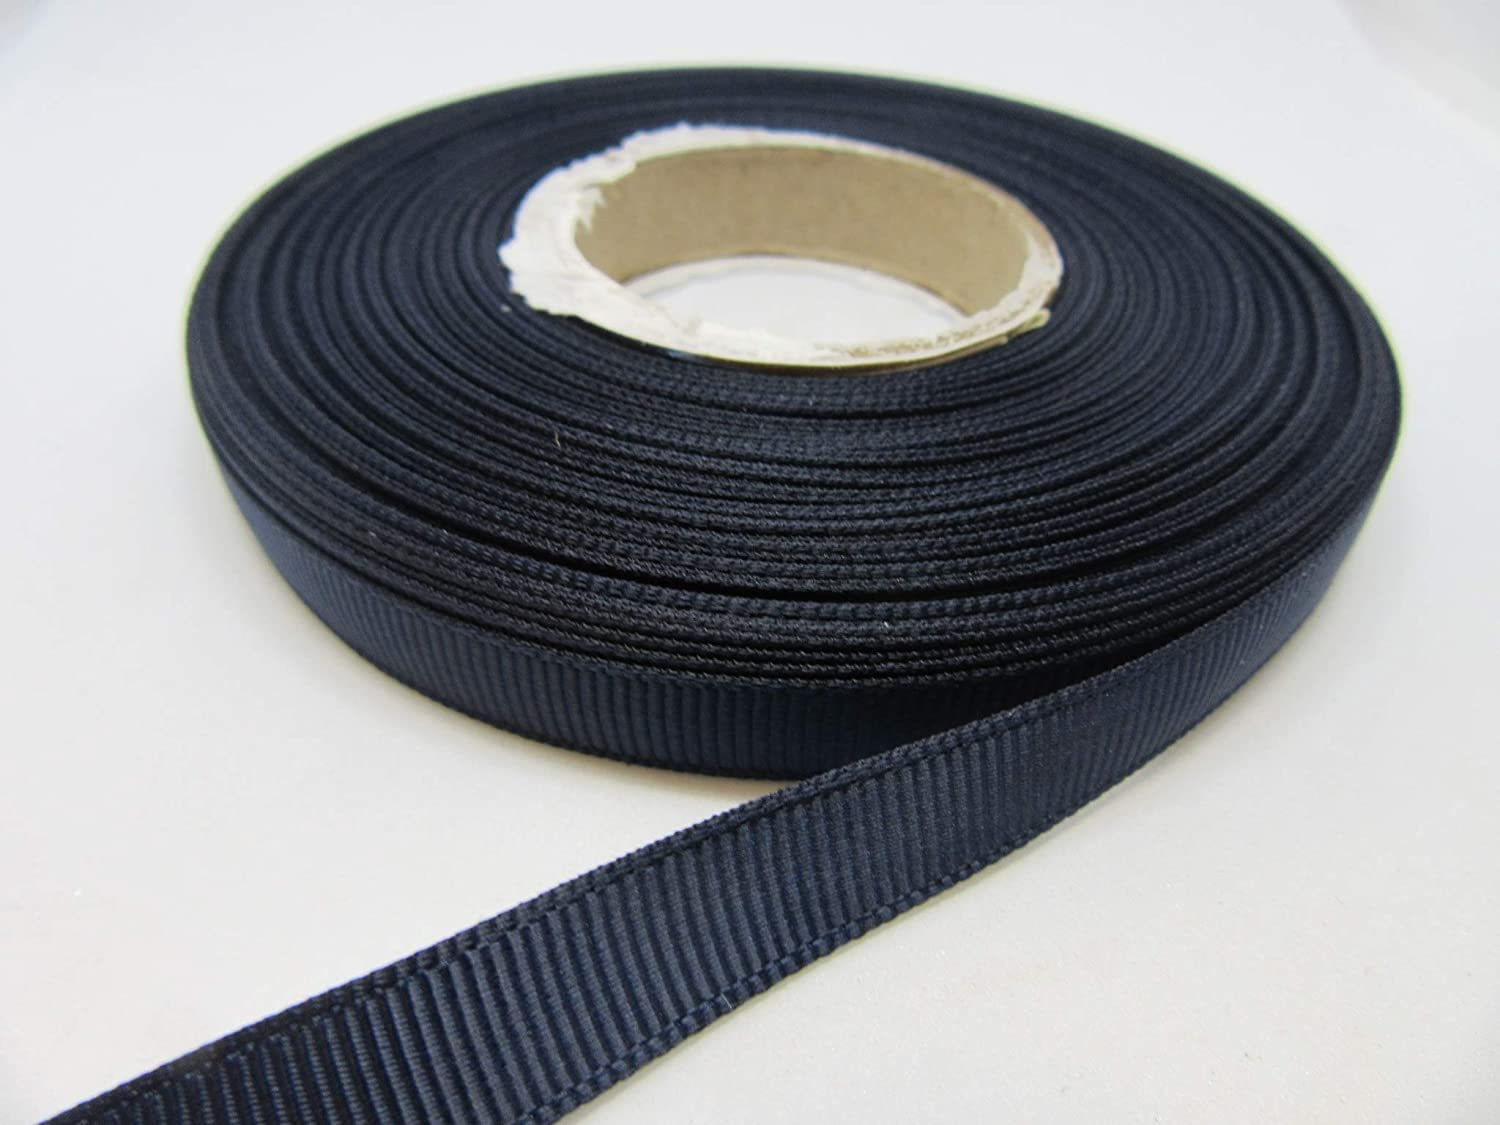 40 Metres Grosgrain Ribbon 10mm Black 40 metres